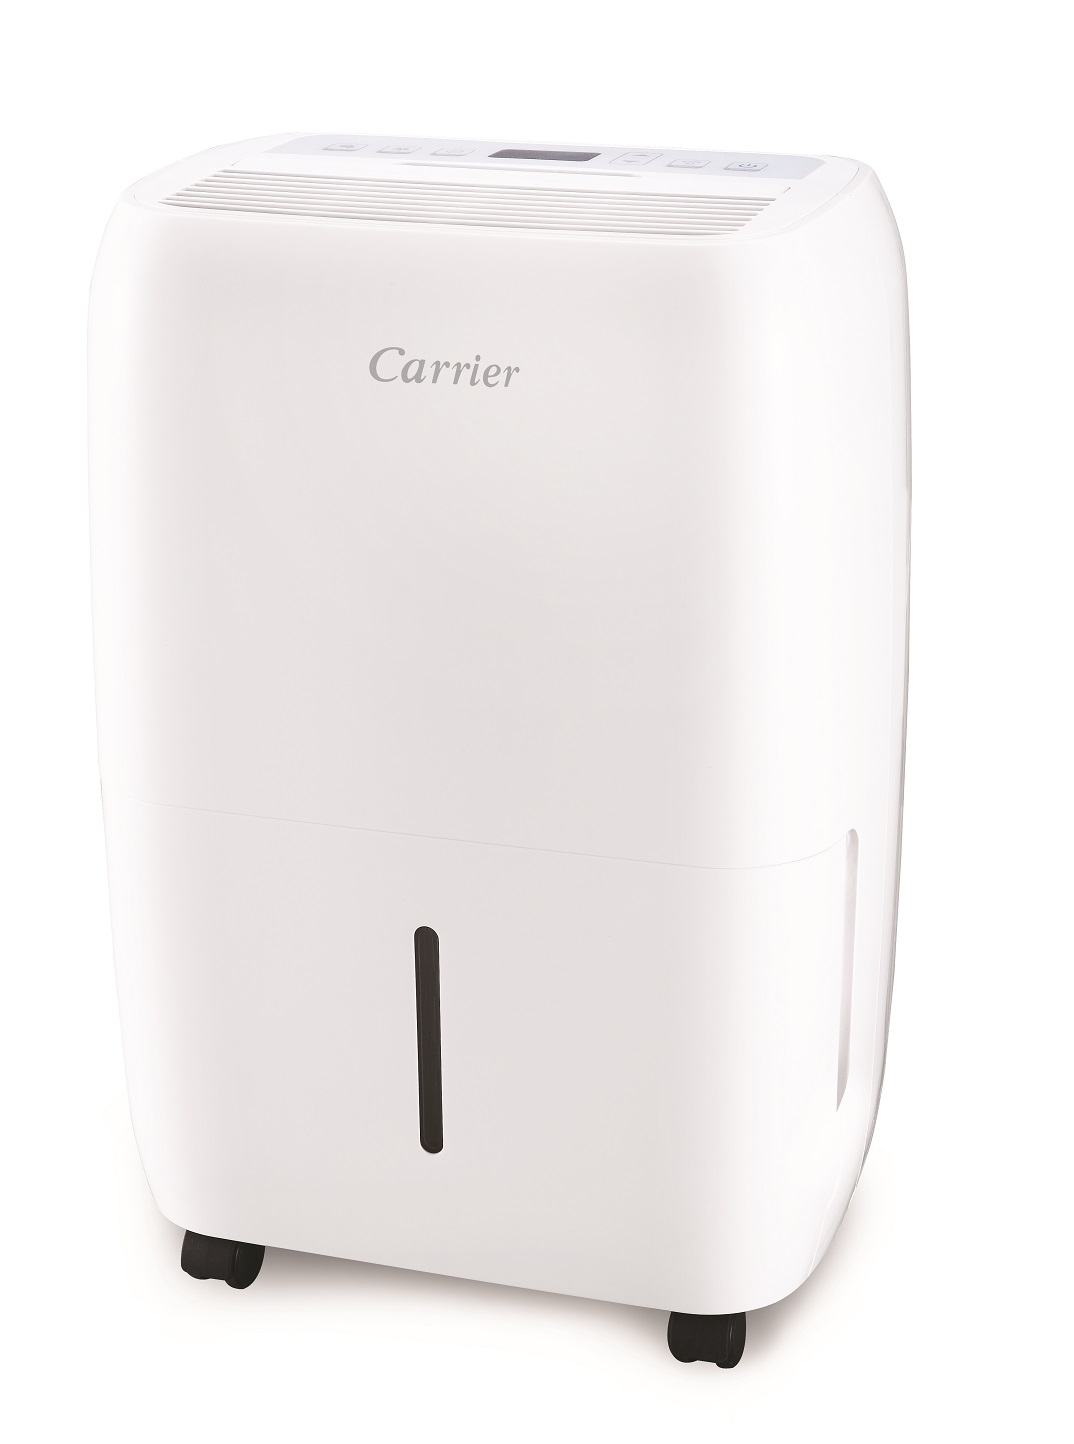 Carrier DC-18CA